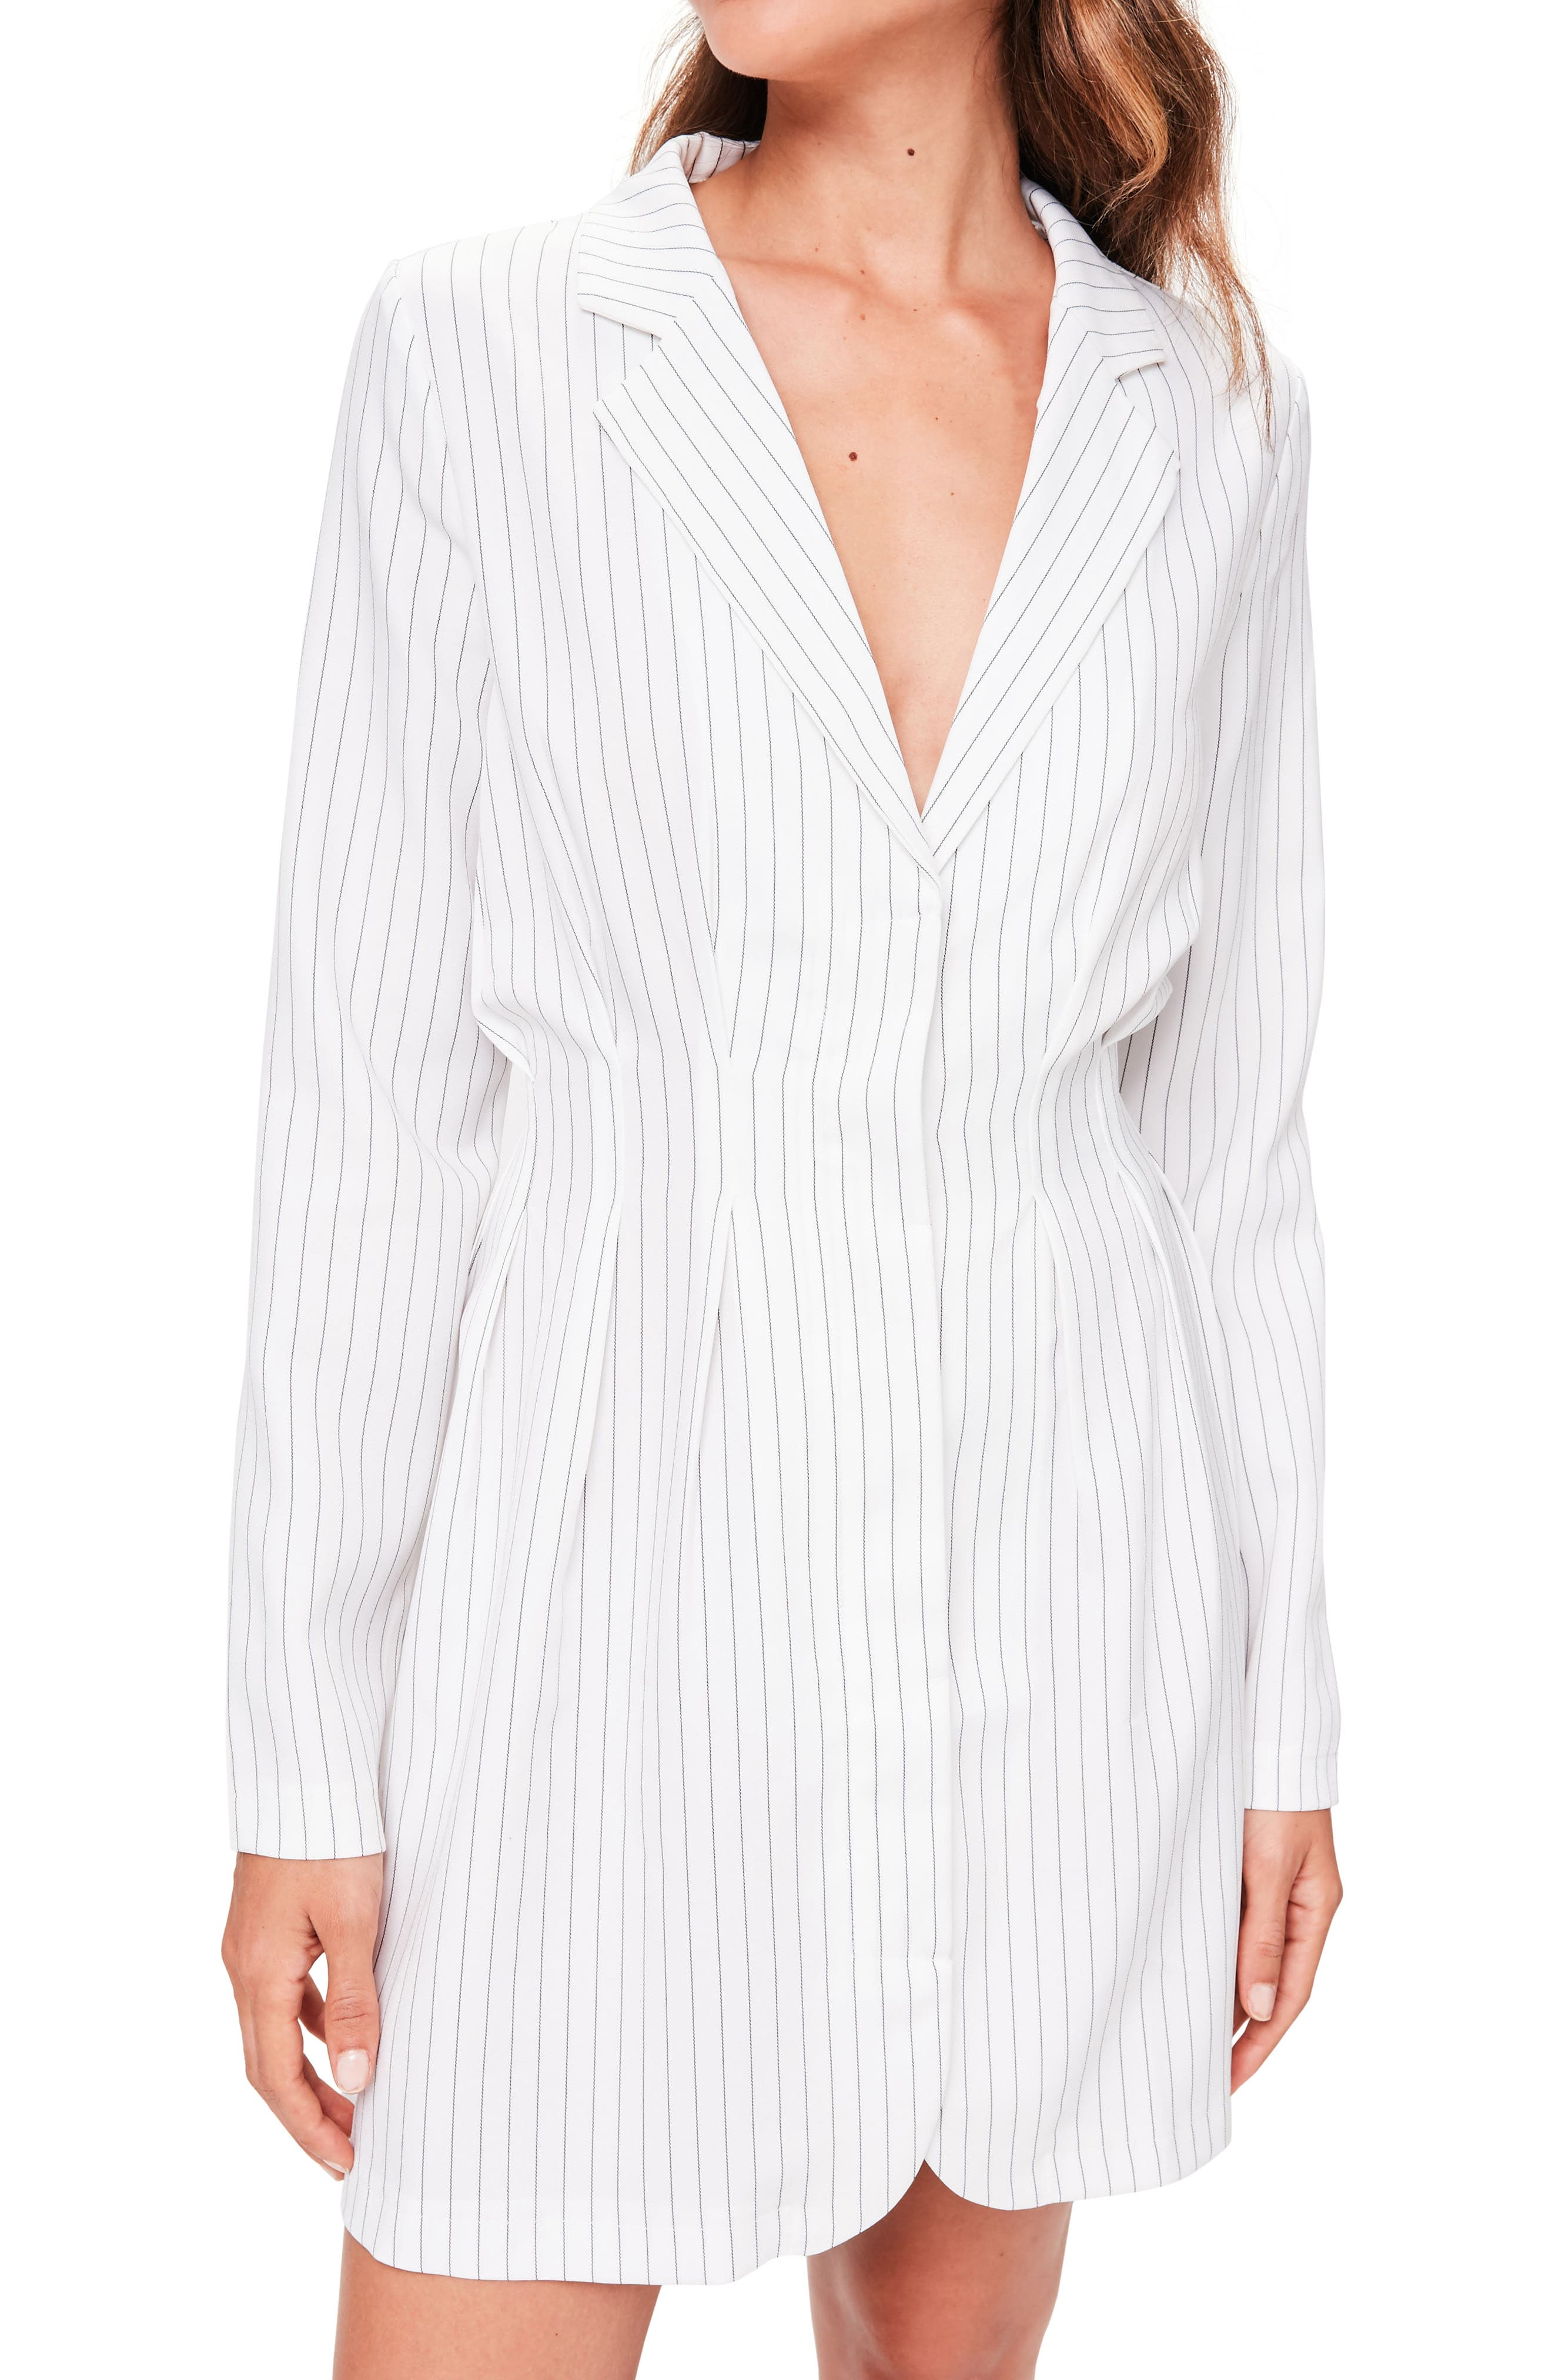 Pinstripe Blazer Dress,                             Alternate thumbnail 4, color,                             White